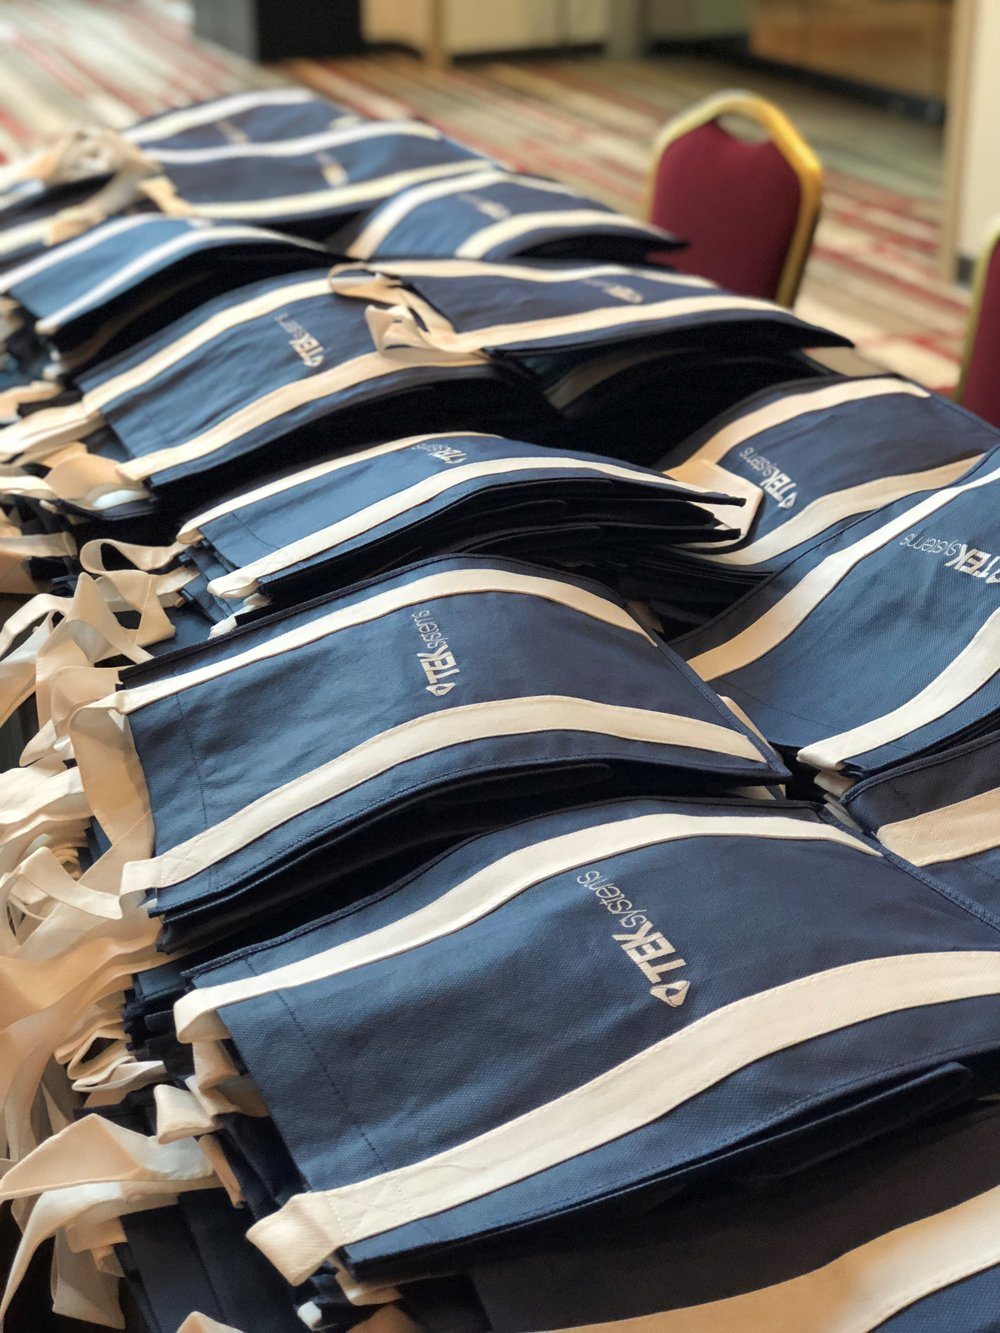 Conference Bags - • 1 available sponsorship• Logo on conference bags to be designed and supplied by conference• All SUPPORTER benefits plus:• 1 additional complimentary registration• $3,500 for all day on Friday, August 23rd